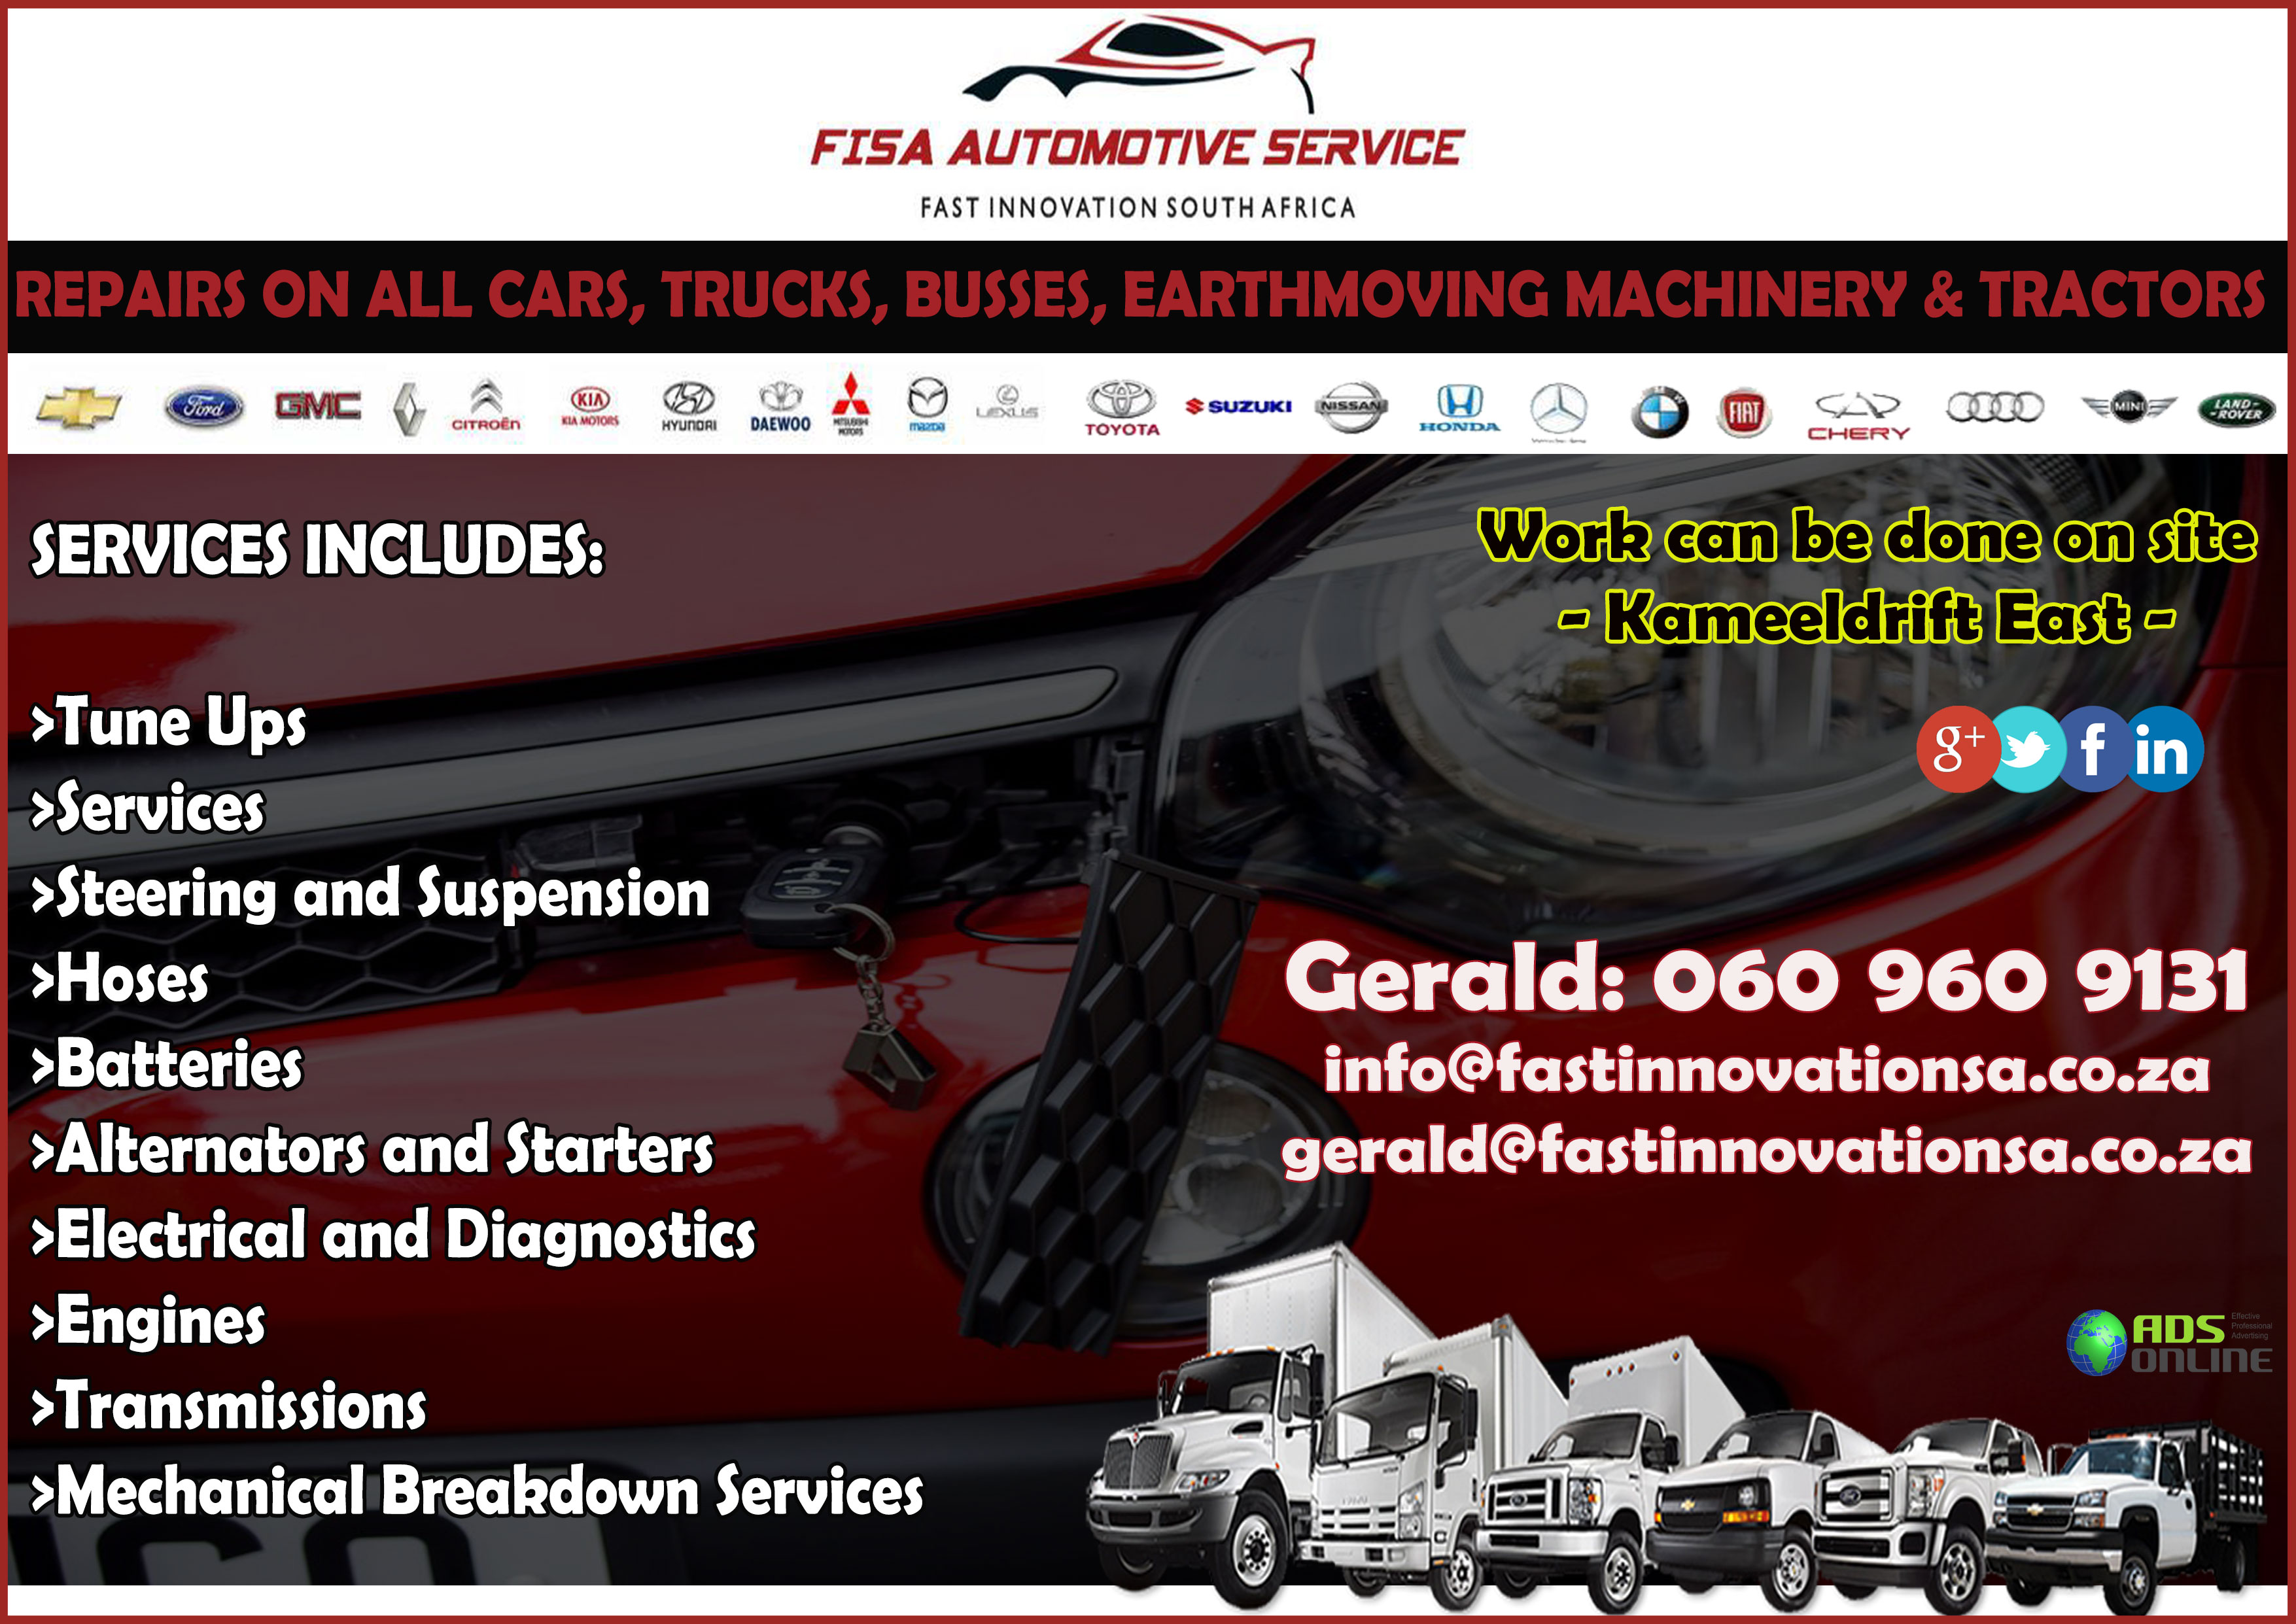 FISA AUTOMOTIVE SERVICE – Kameeldrift East, Pretoria, Gauteng